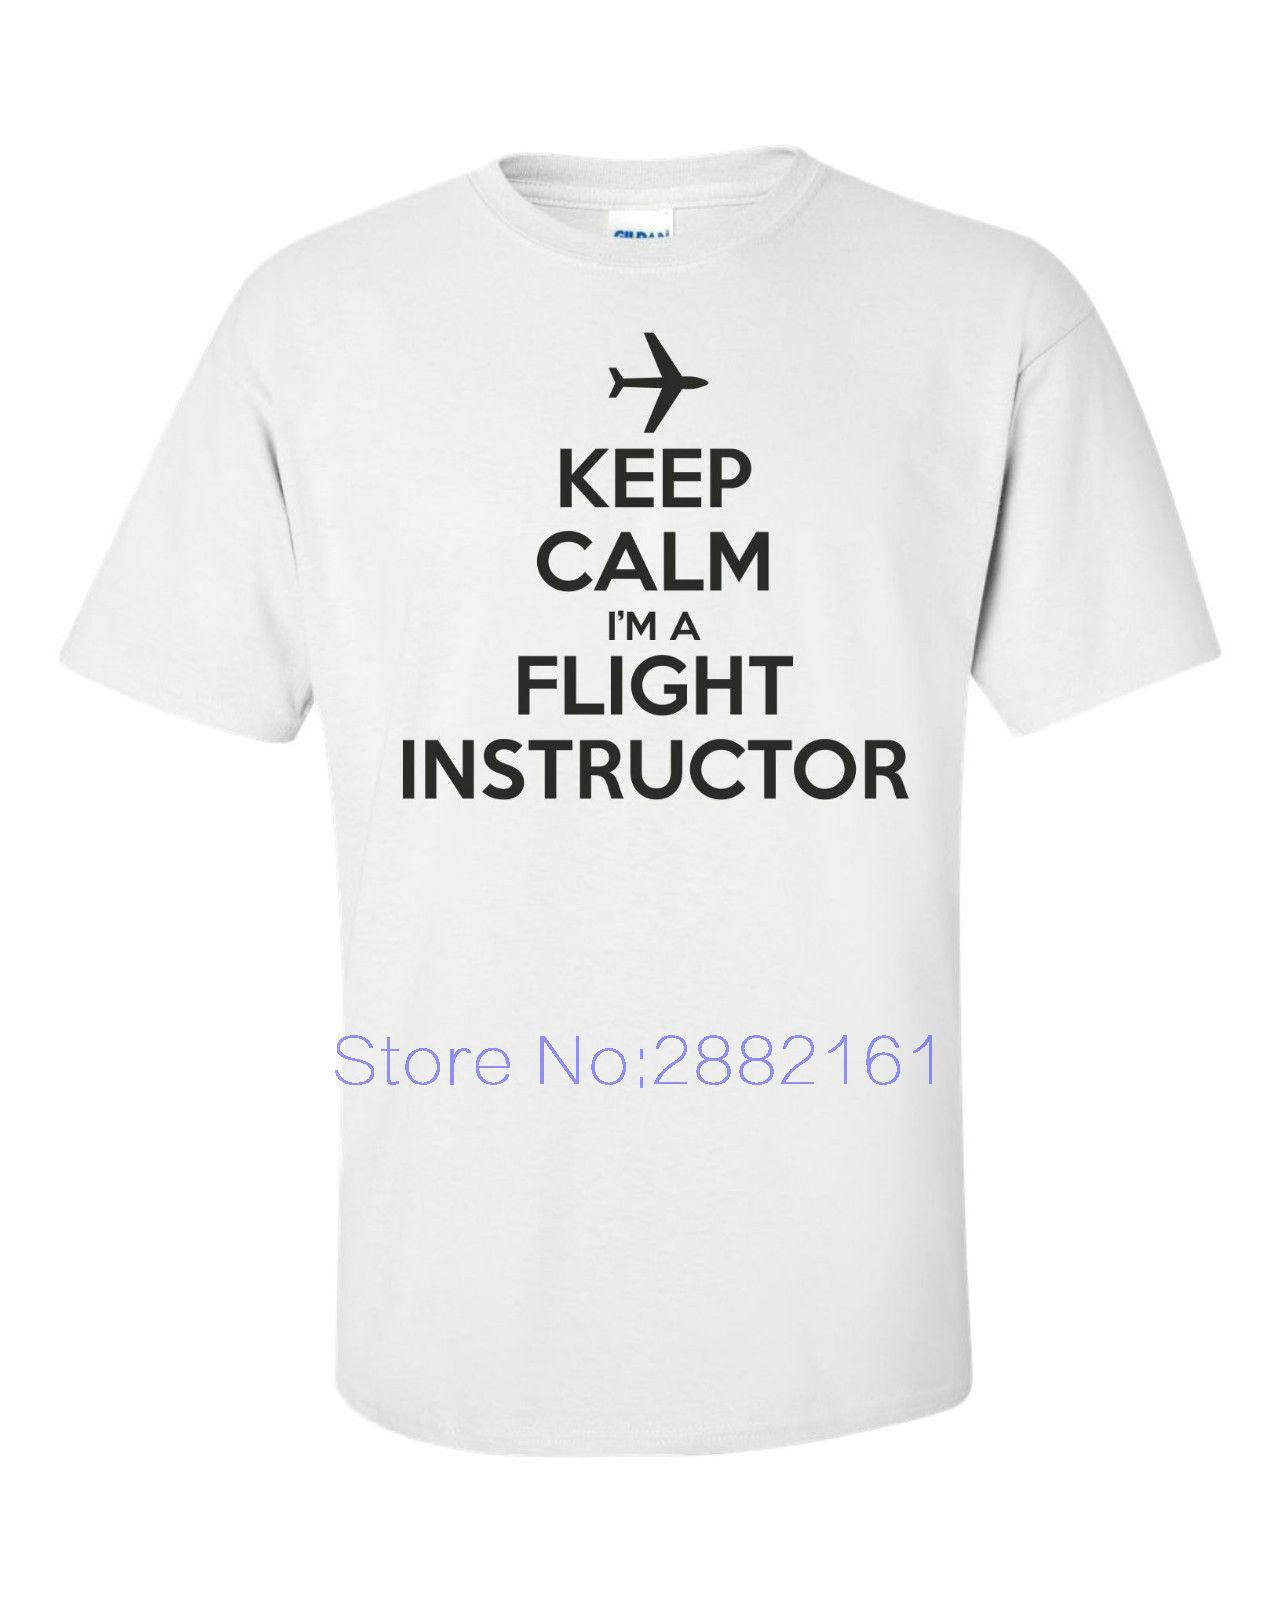 bcb2de760 KEEP CALM FLIGHT INSTRUCTOR Funny Mens T Shirt AVIATION AIRPLANE PLANE PILOT  Short Sleeves Cotton Purchase T Shirt Crazy Tee Shirts Online From  Beidhgate02a ...